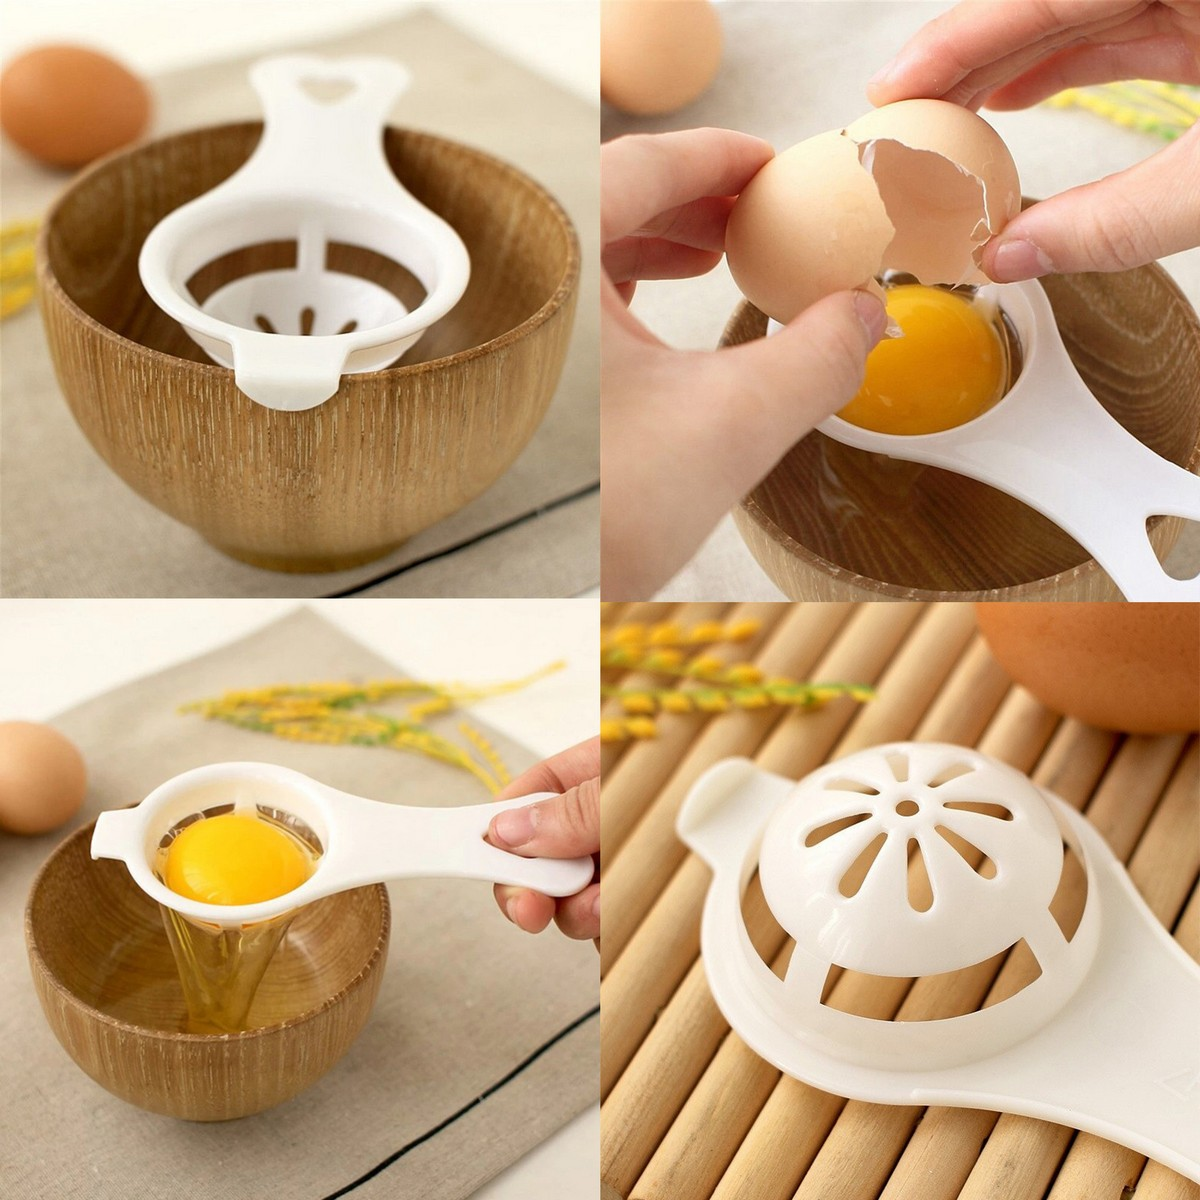 Egg Separator Cake Cooking Tools White Filter Sifting Processing Dispenser Baking Gadget Utensils Yolk Separation Essential Food Grade Material For Home Family Divider Cakes Pastry Bakeware Dividers Safe Practical Hand Kitchen Tool Easy Sieve